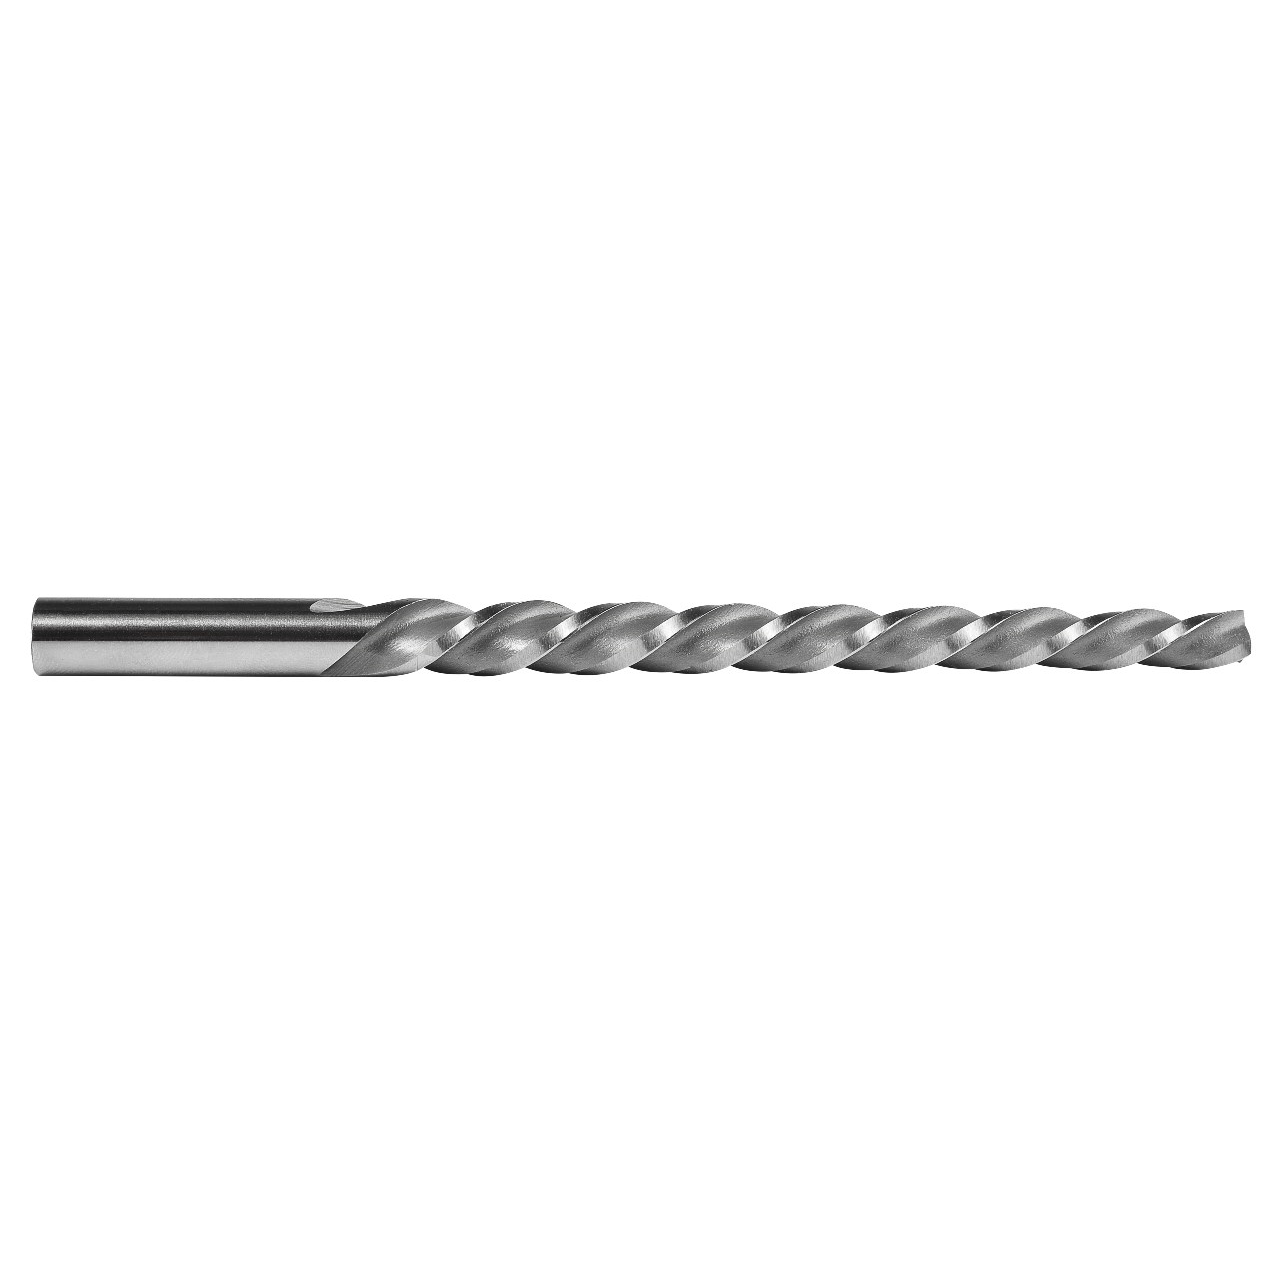 N7 HSS Bright Square Taper Pin Reamer